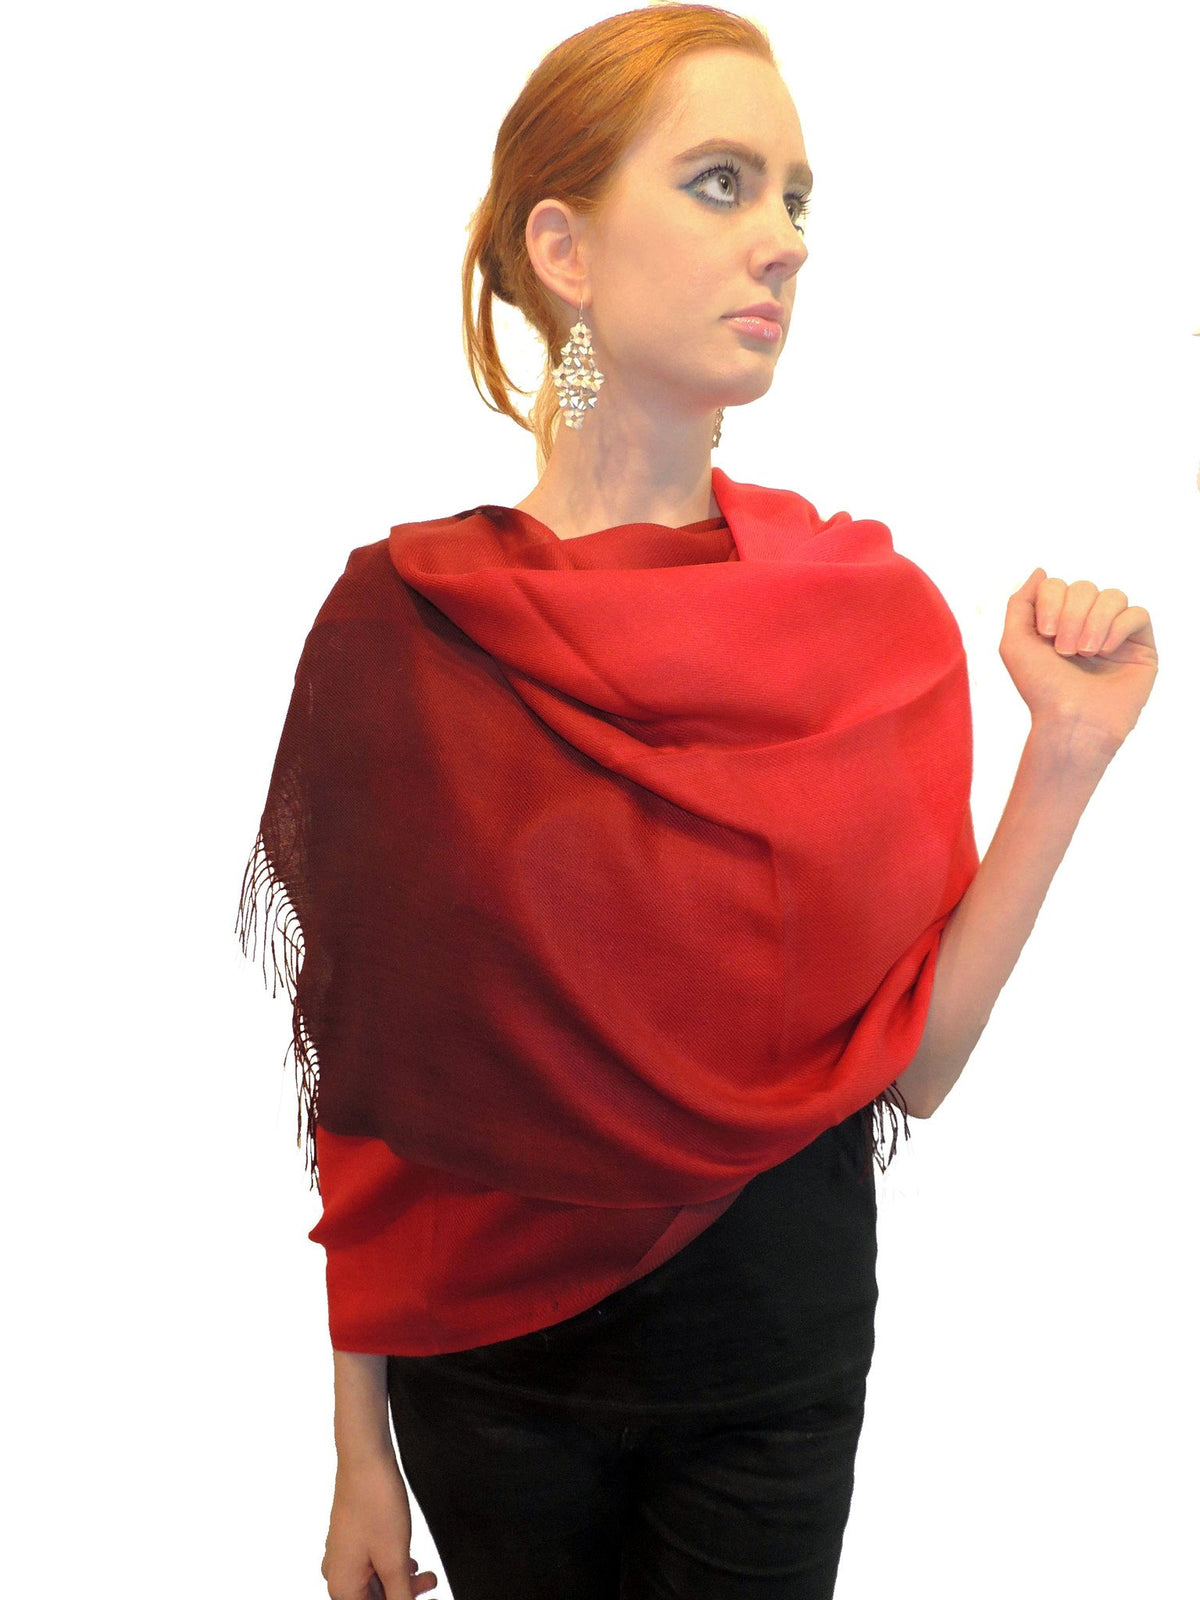 Baby Alpaca Shawl in Silk Blend - Two-Tone Degrade Red - Qinti - The Peruvian Shop